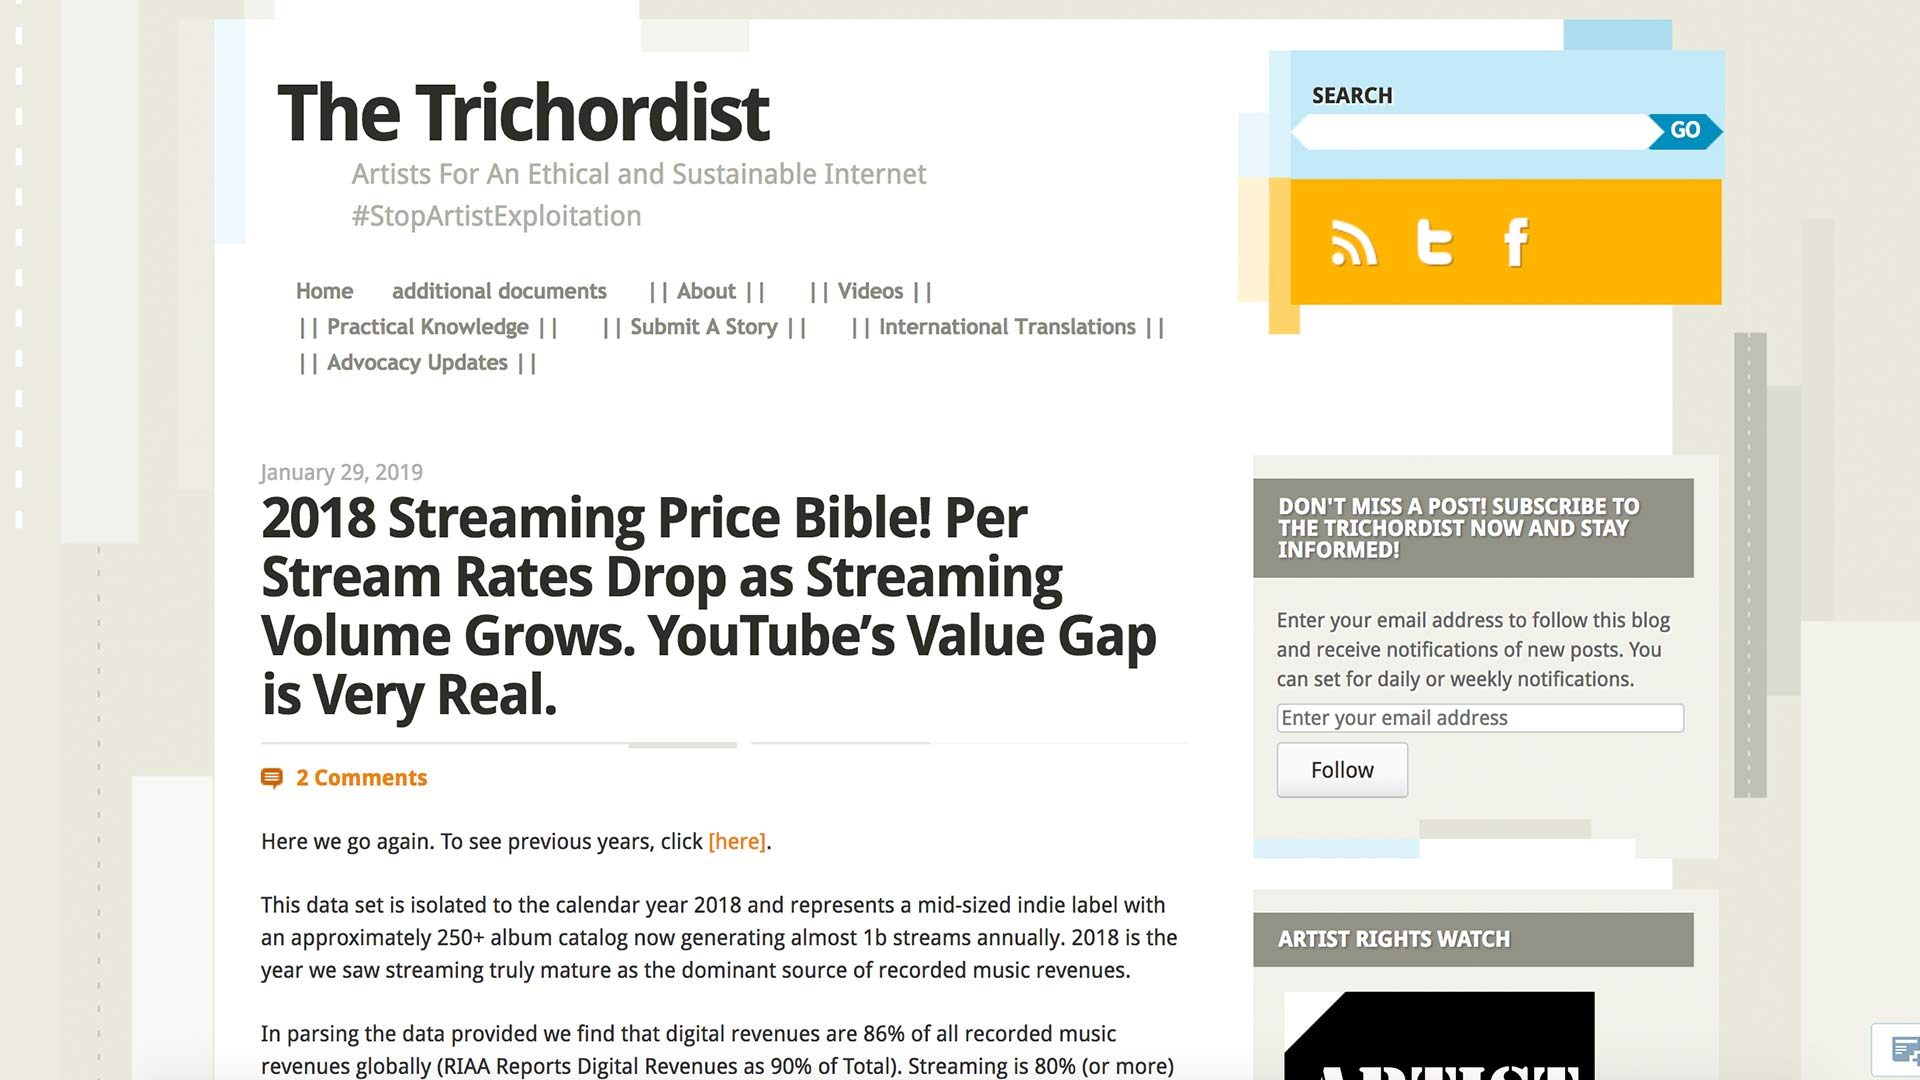 Fairness Rocks News 2018 Streaming Price Bible! Per Stream Rates Drop as Streaming Volume Grows. YouTube's Value Gap is Very Real